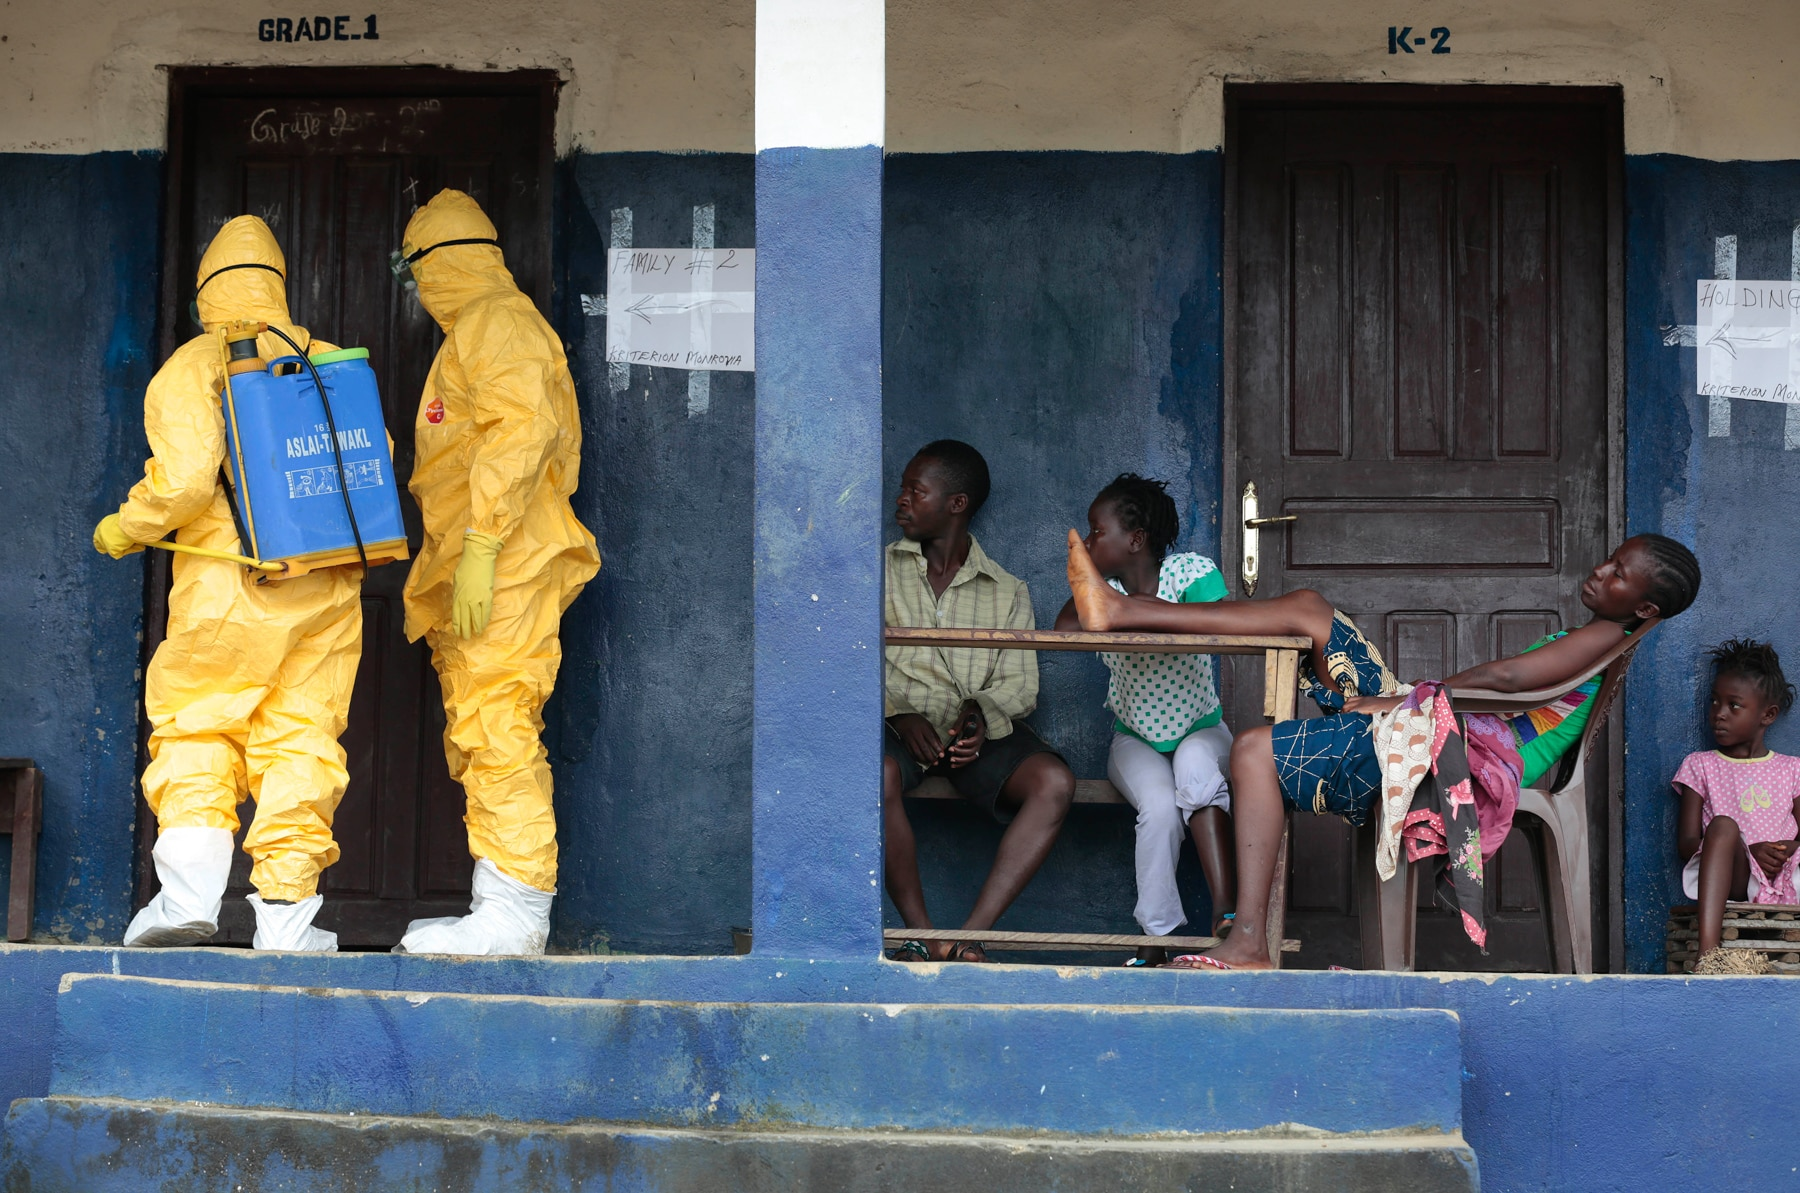 Four people watching two people in hazmat suits at a door (© AP Images) & Disease detectivesu0027 stop outbreaks | ShareAmerica pezcame.com